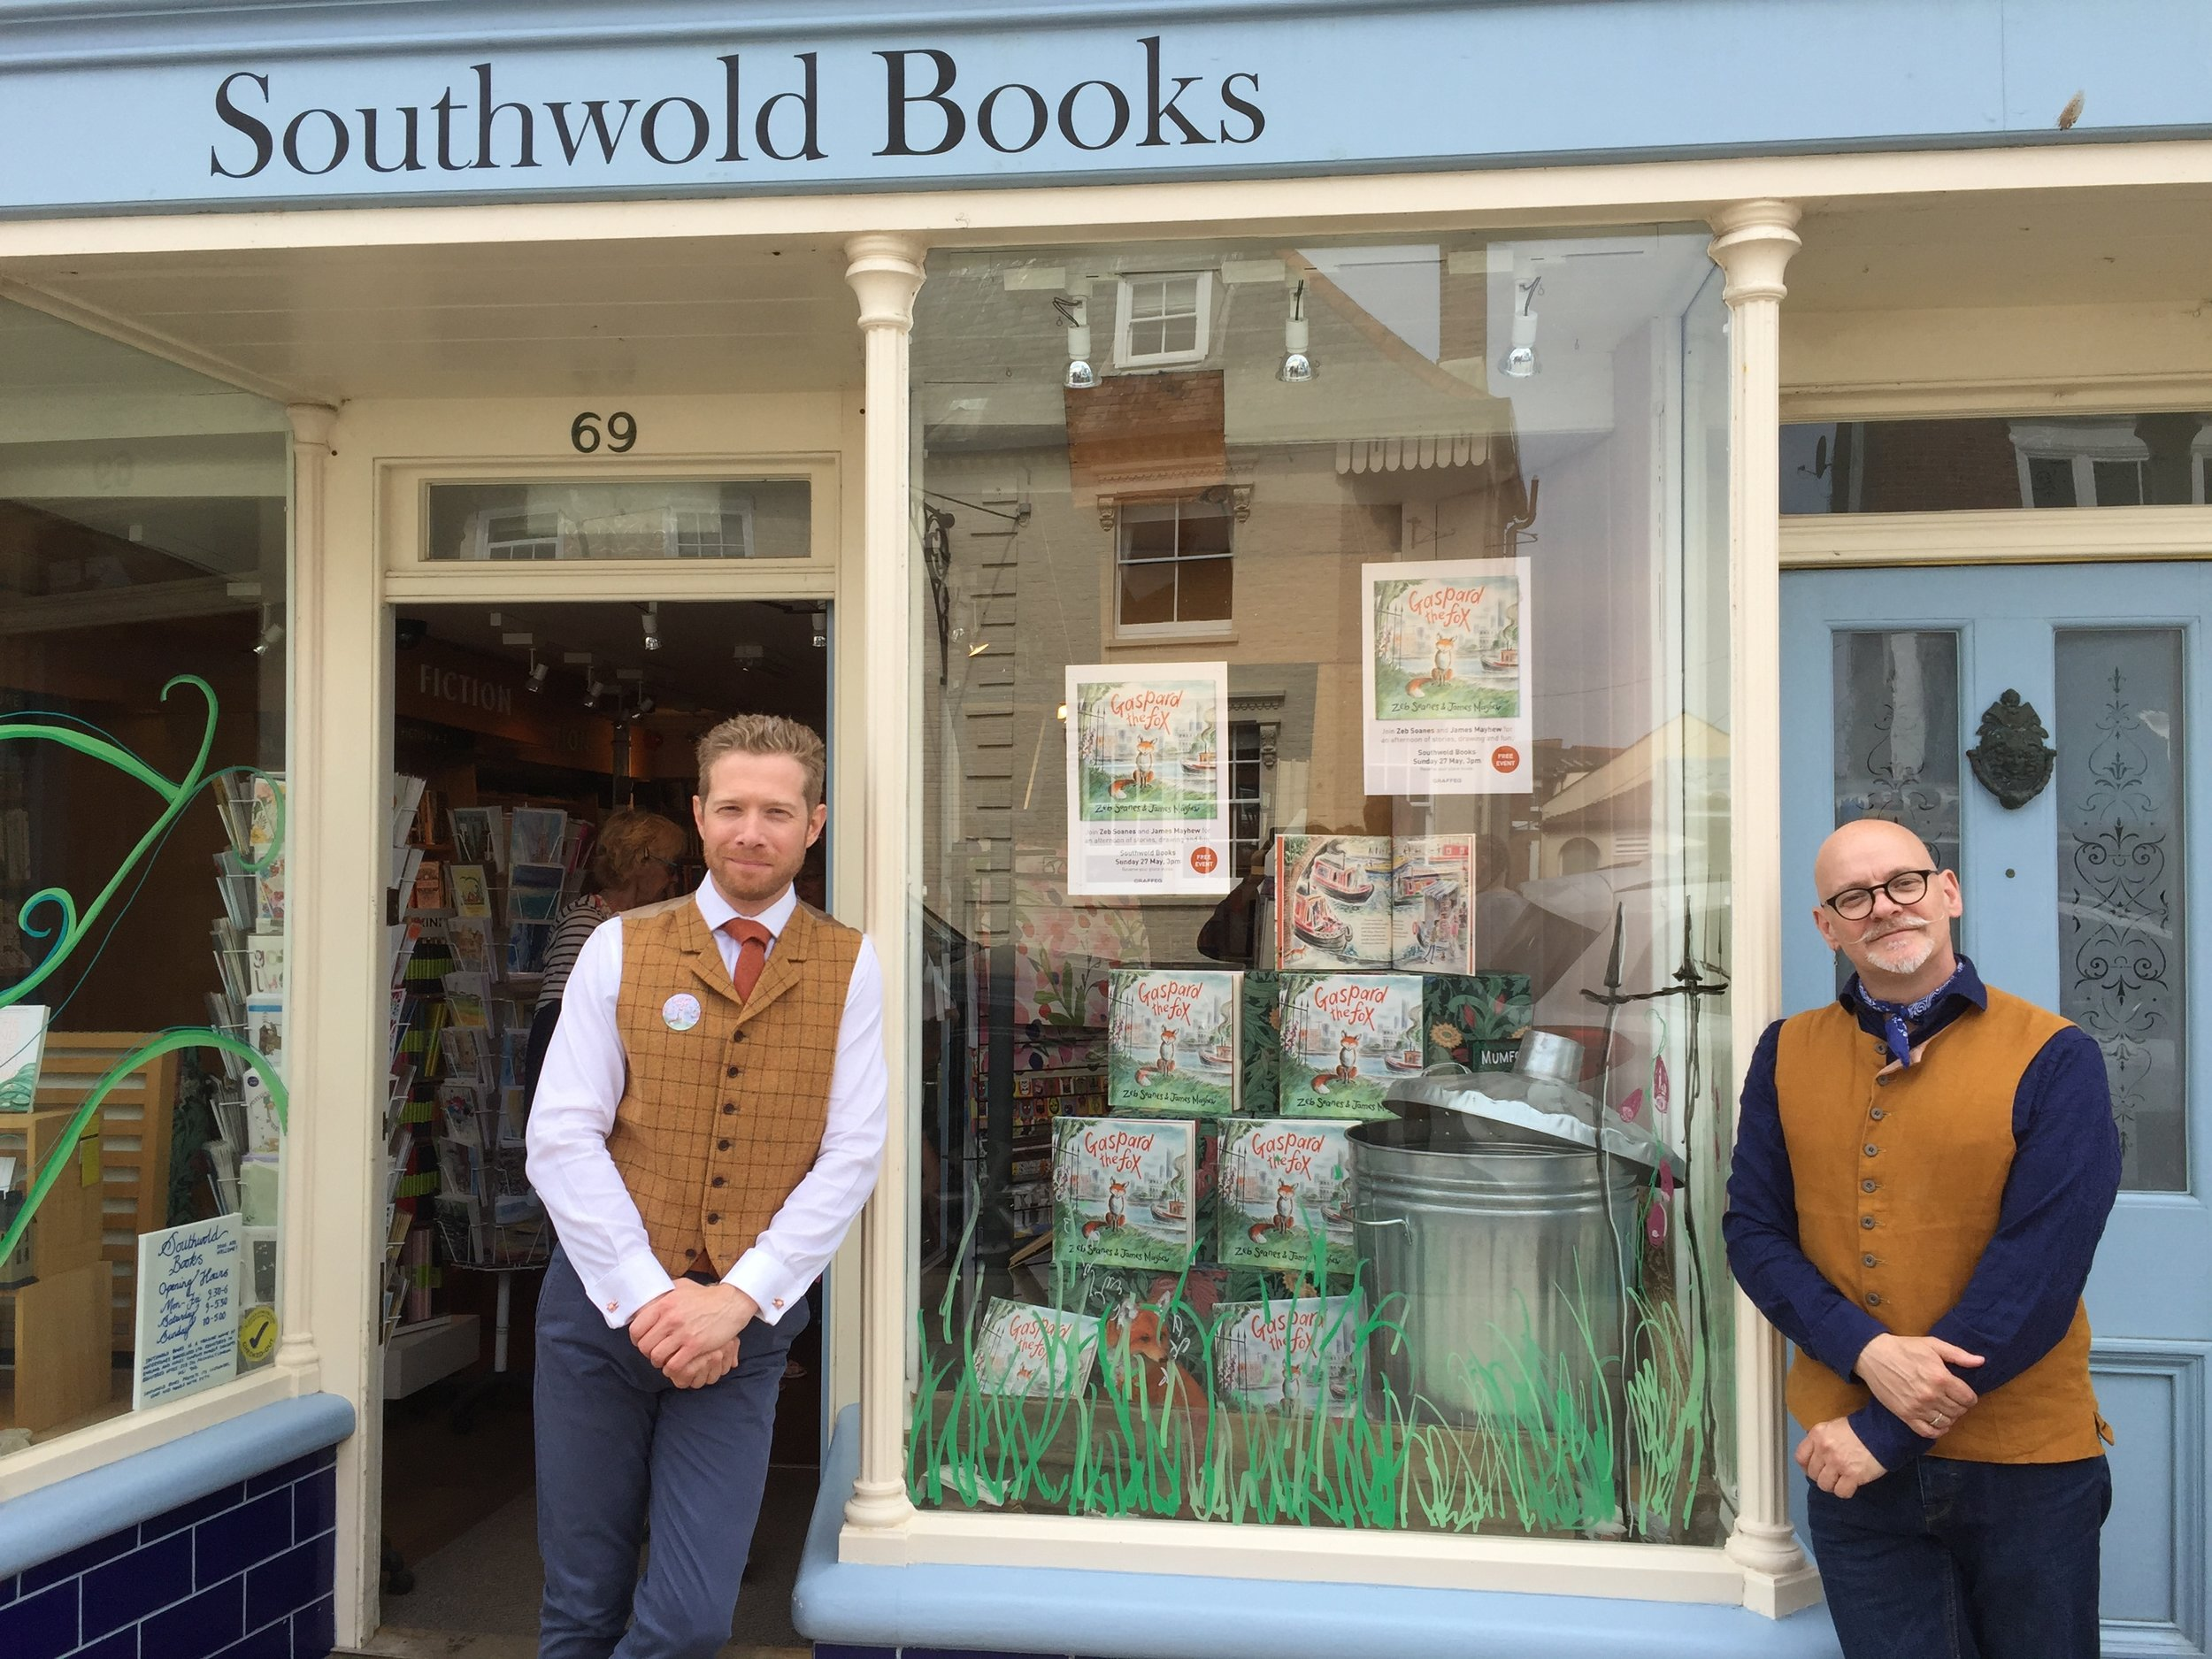 Southwold Books